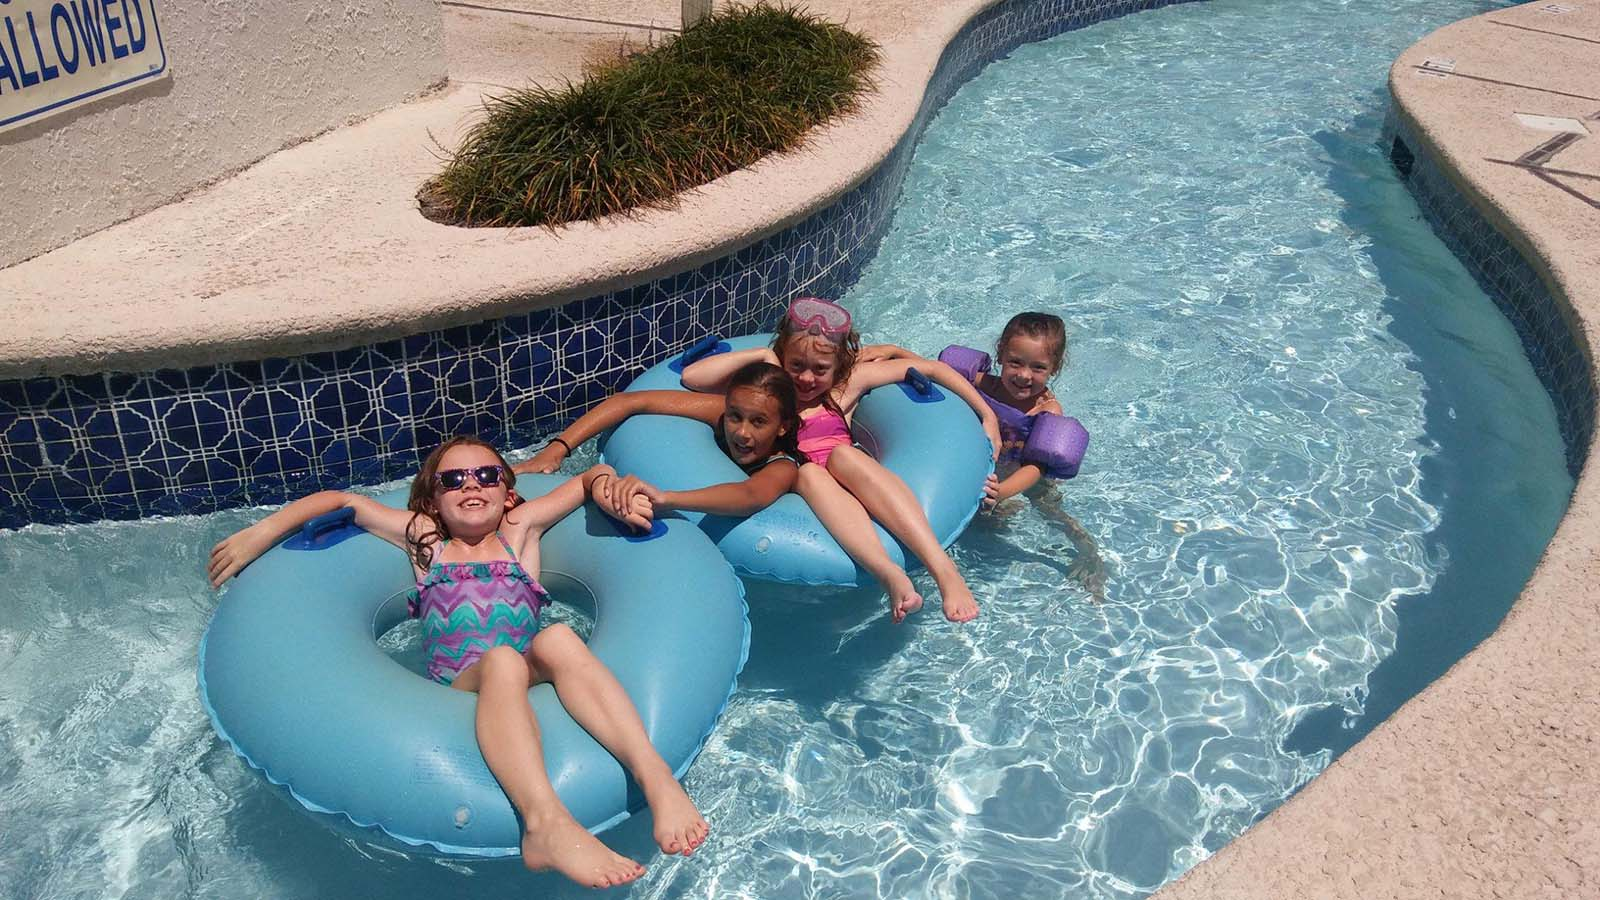 Siblings in lazy river together going down lazy river